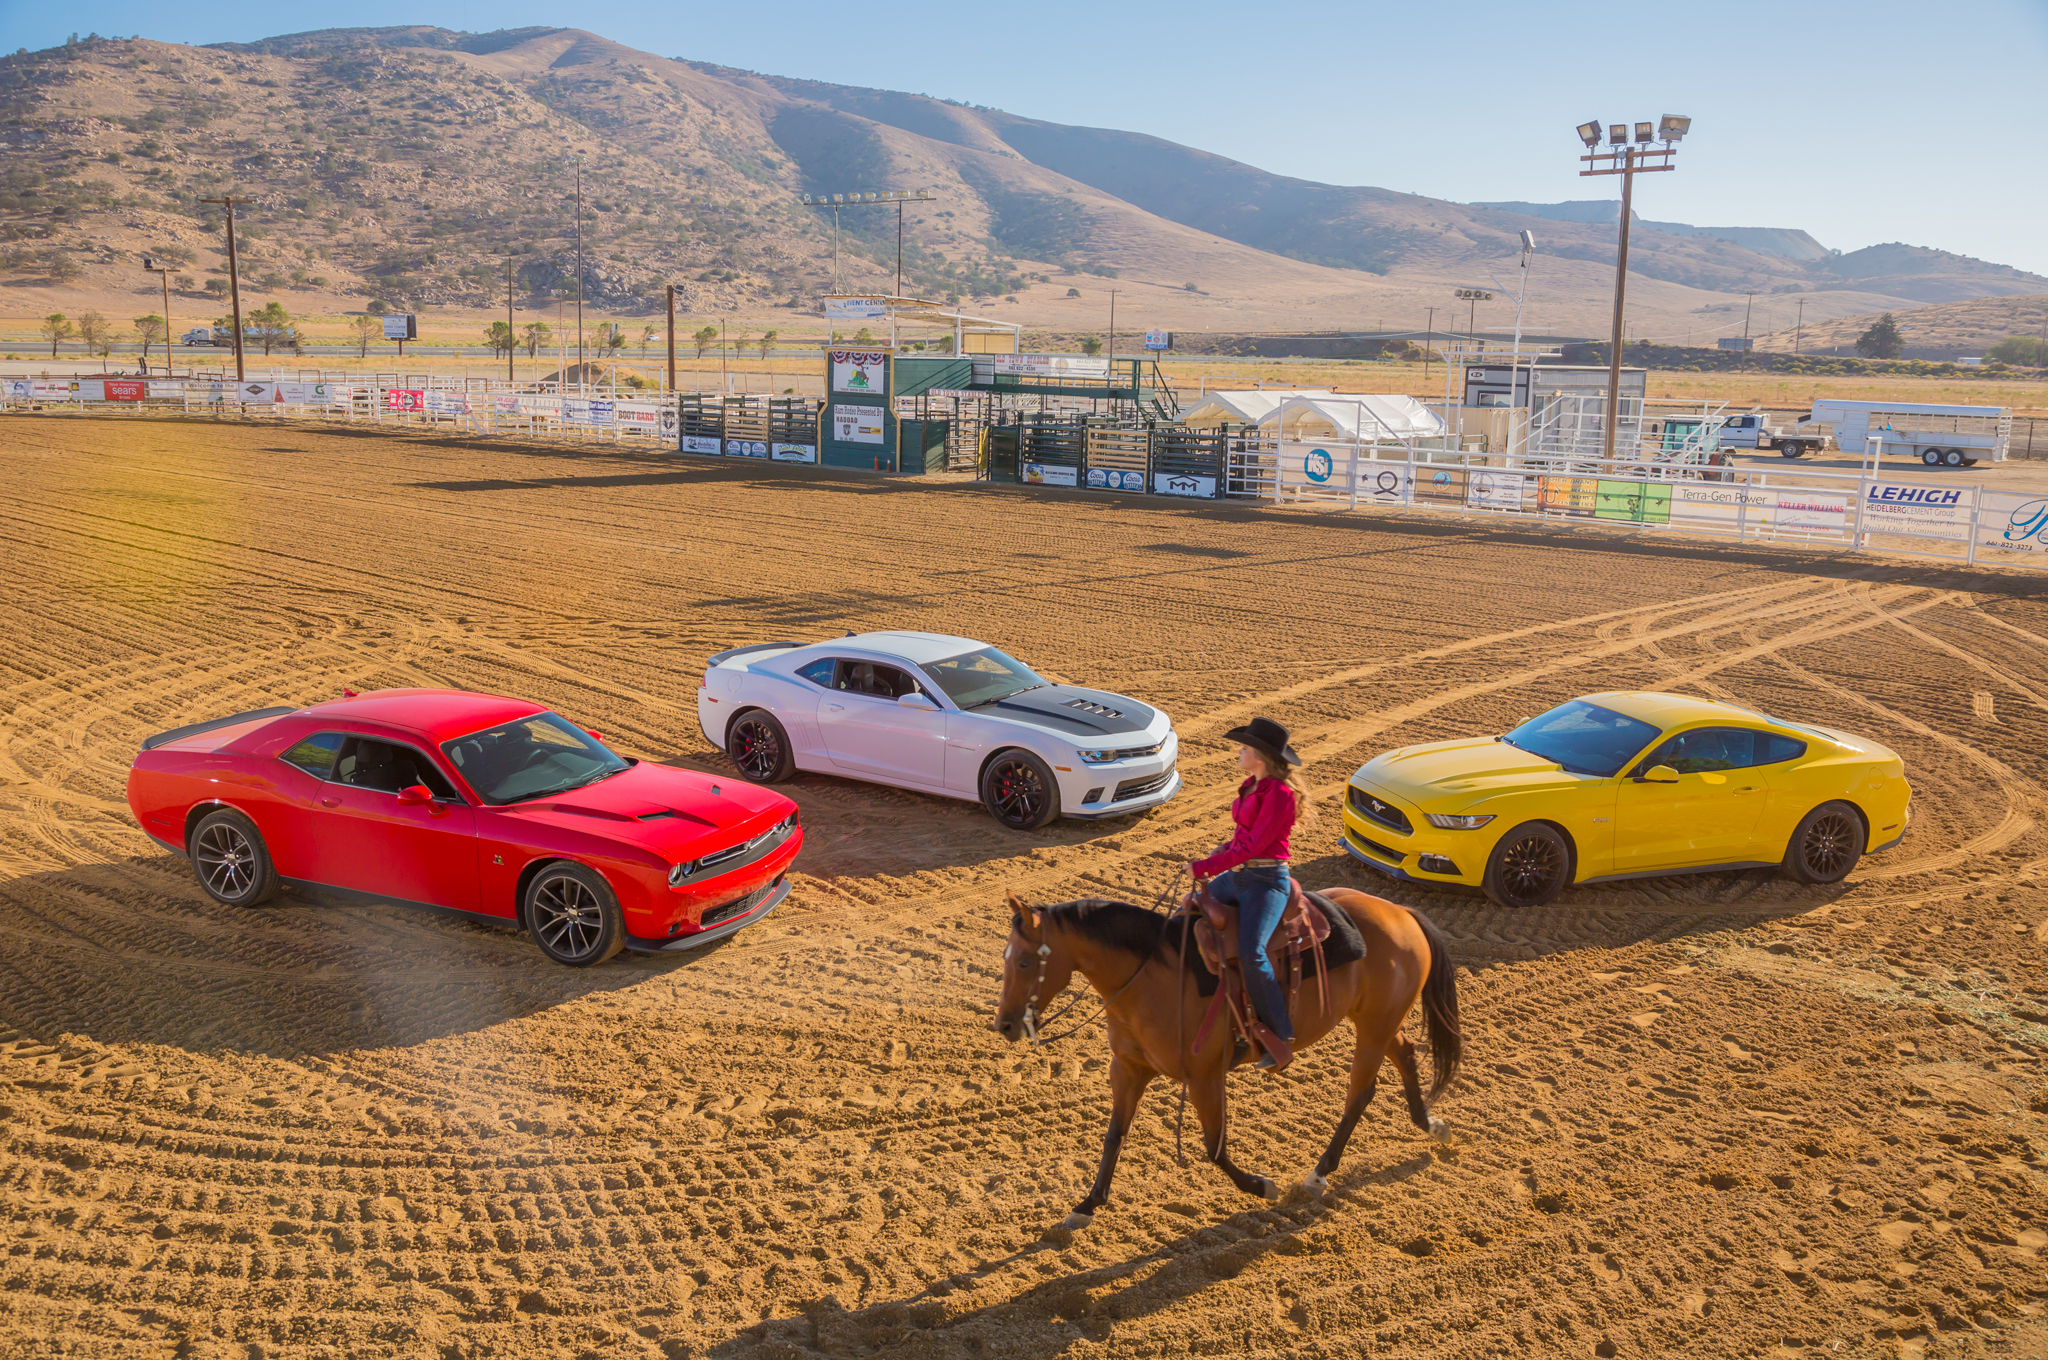 TOTD: Ford Mustang GT, Camaro SS 1LE, or Challenger R/T Scat Pack?